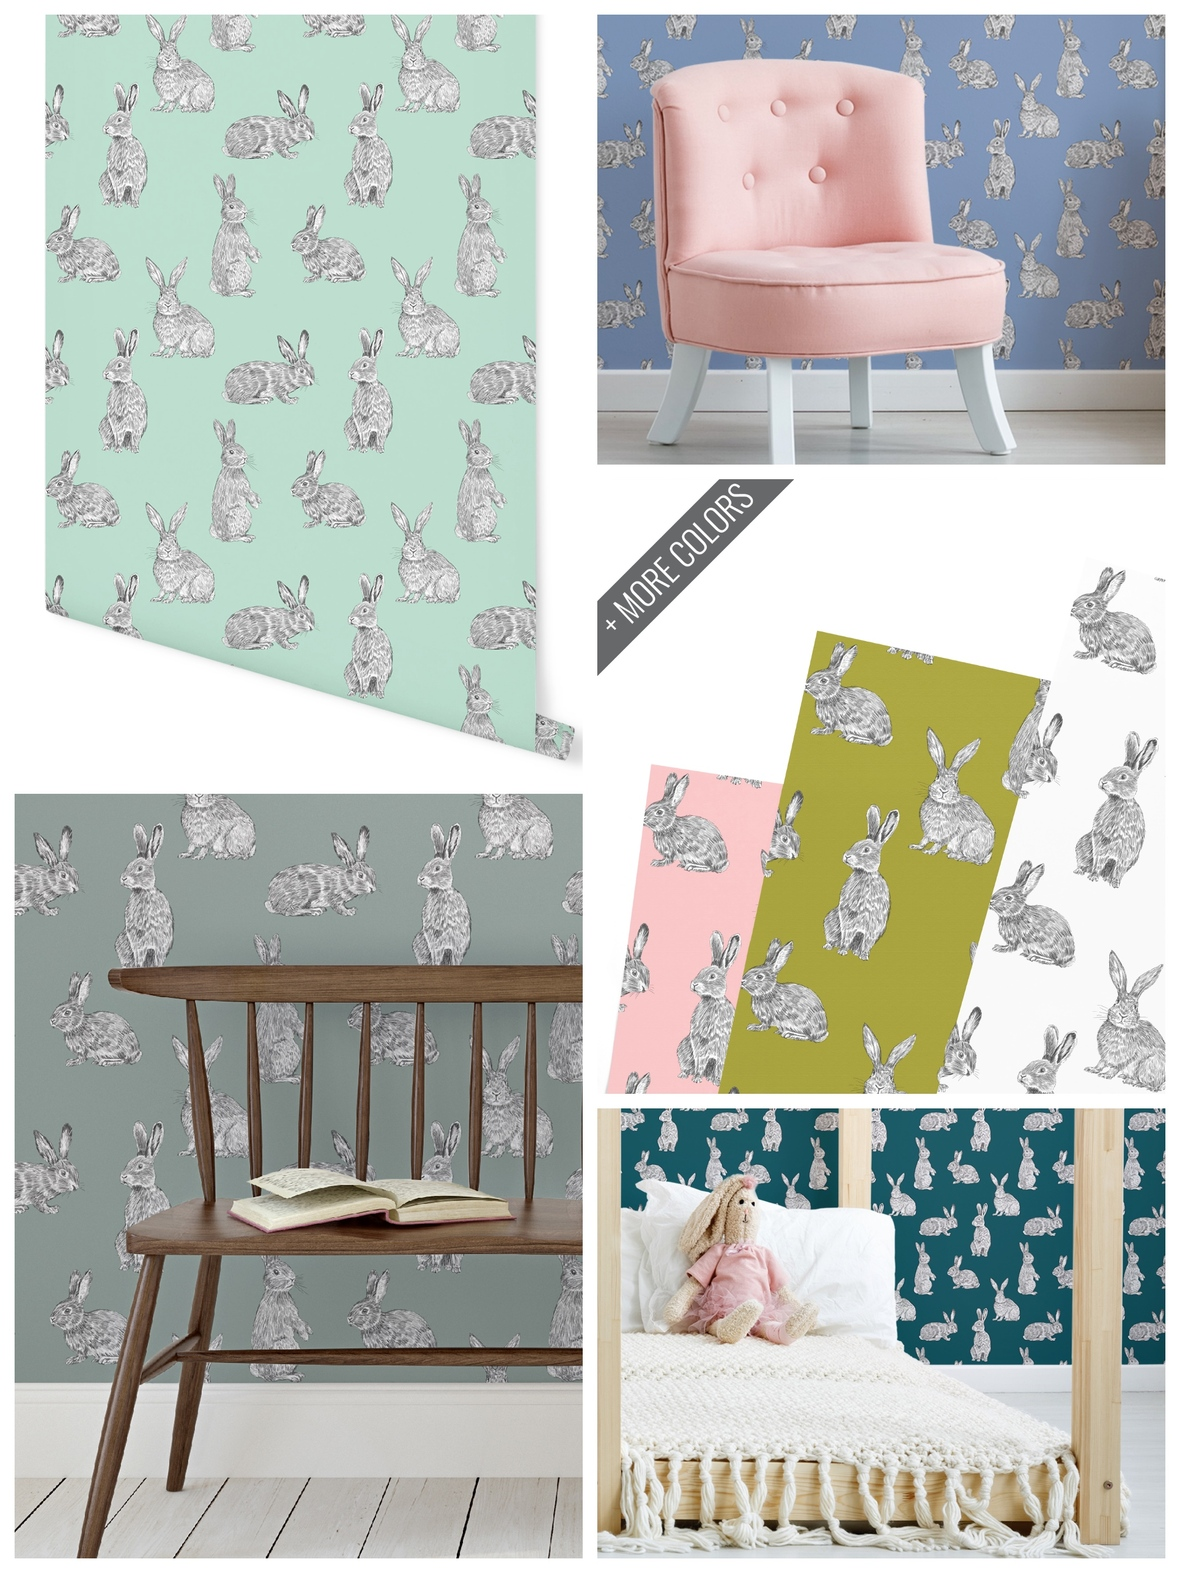 Bunny Hop Removable Wallpaper Hawthorne Supply Co